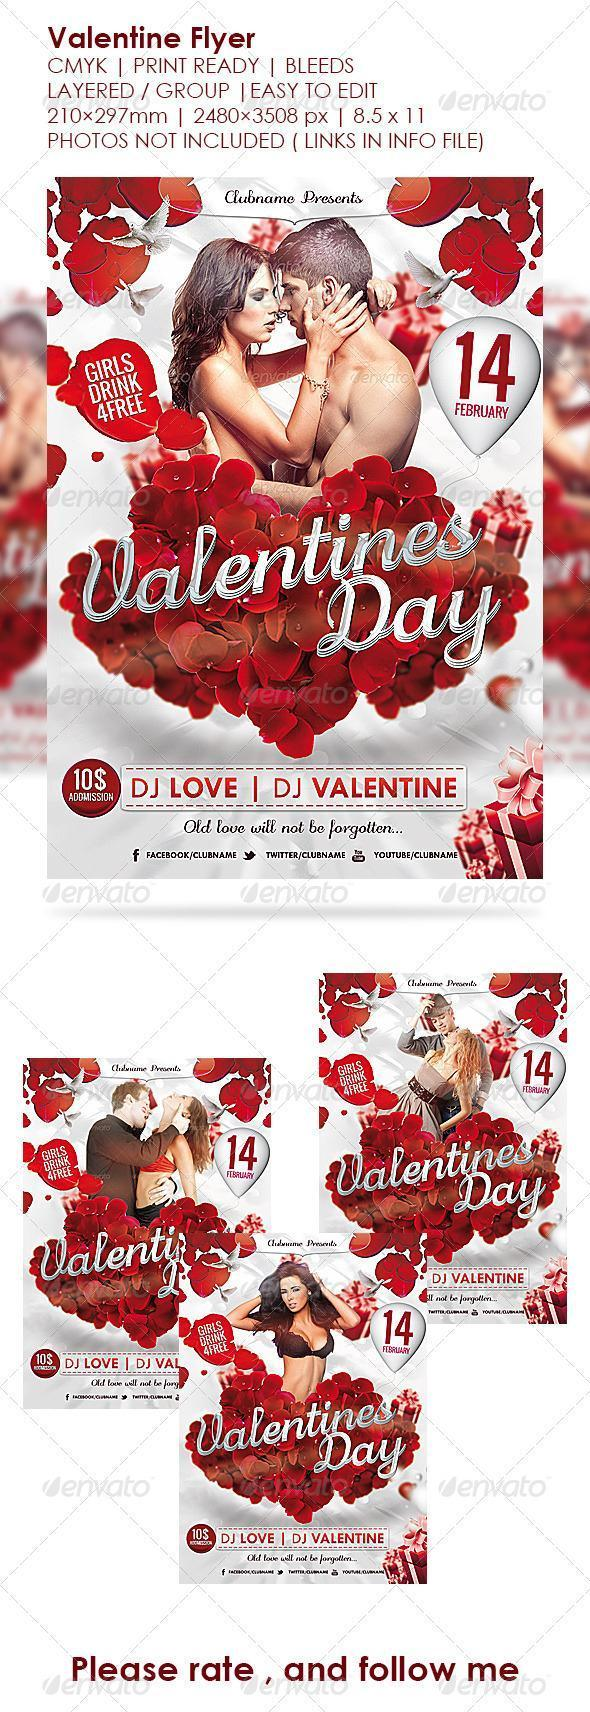 Rose Petals Valentine Day Template